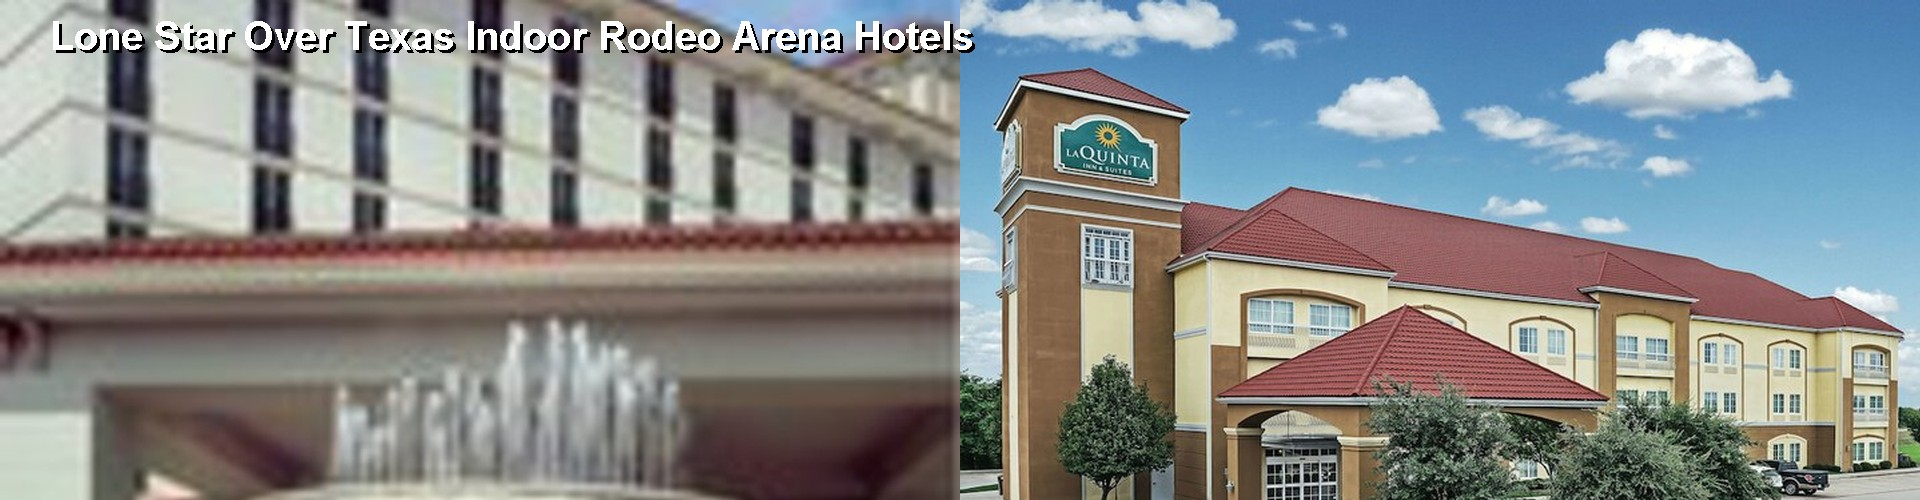 5 Best Hotels near Lone Star Over Texas Indoor Rodeo Arena